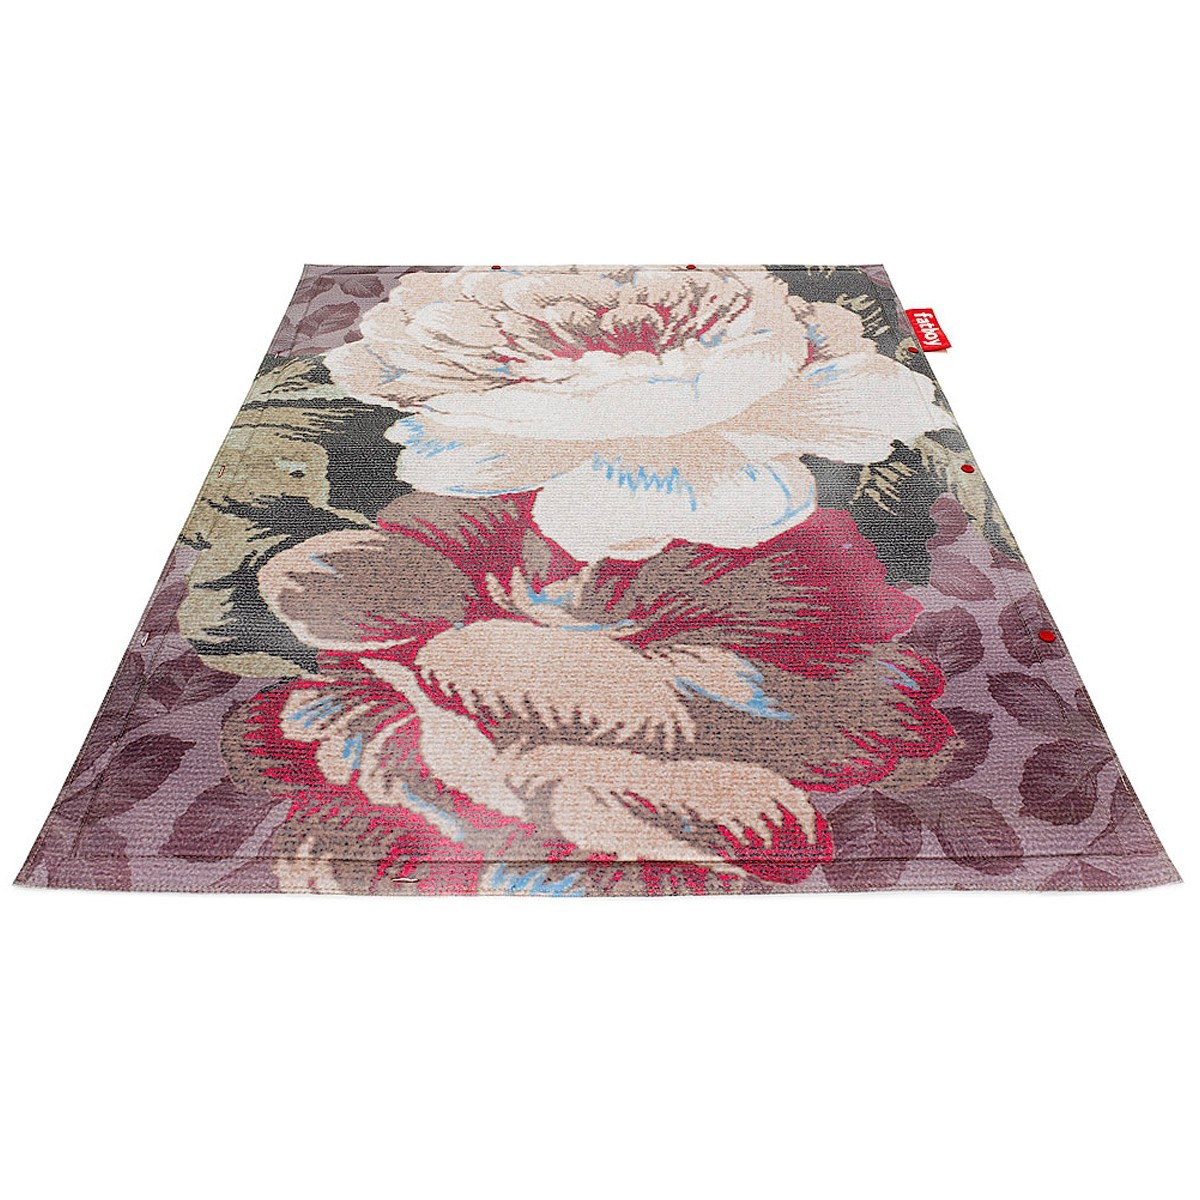 Fatboy Non Flying Carpet vloerkleed-Big Floral Blue